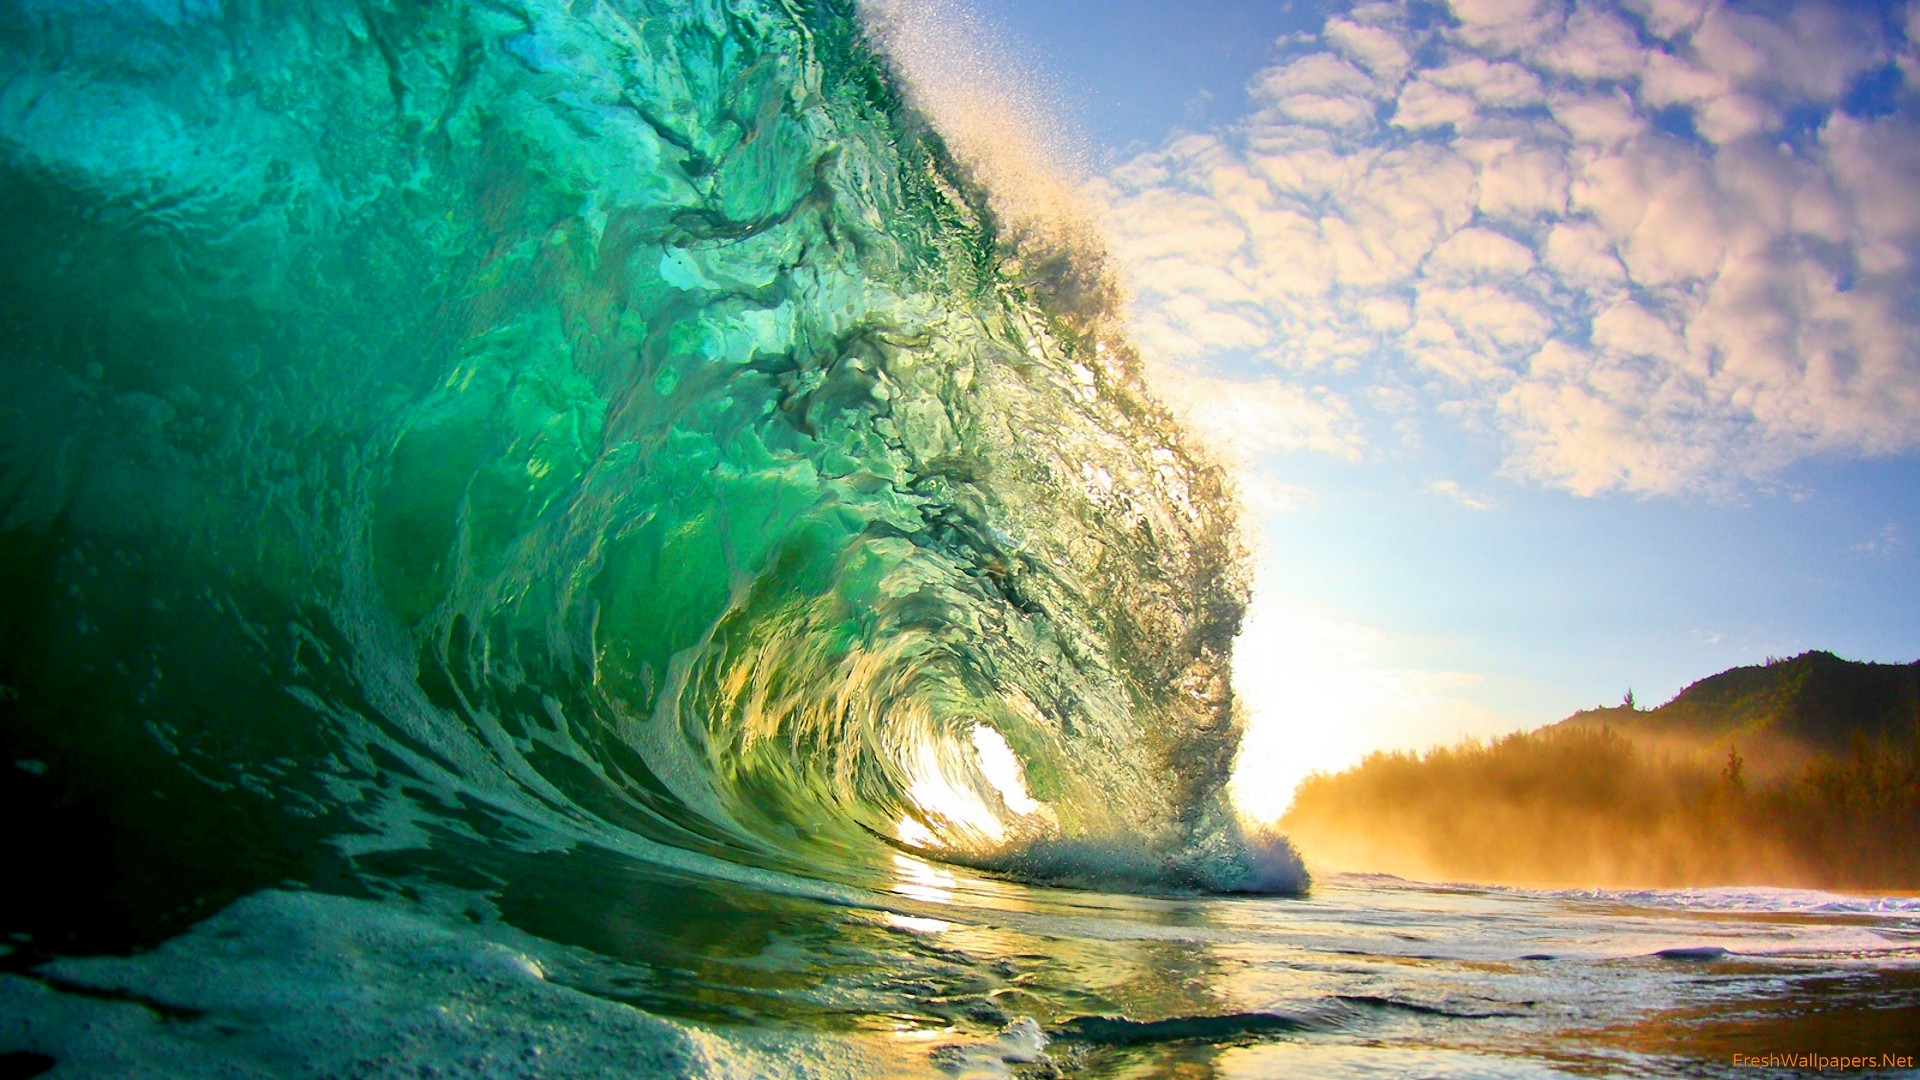 Wave Images Wallpapers (28 Wallpapers) - Adorable Wallpapers